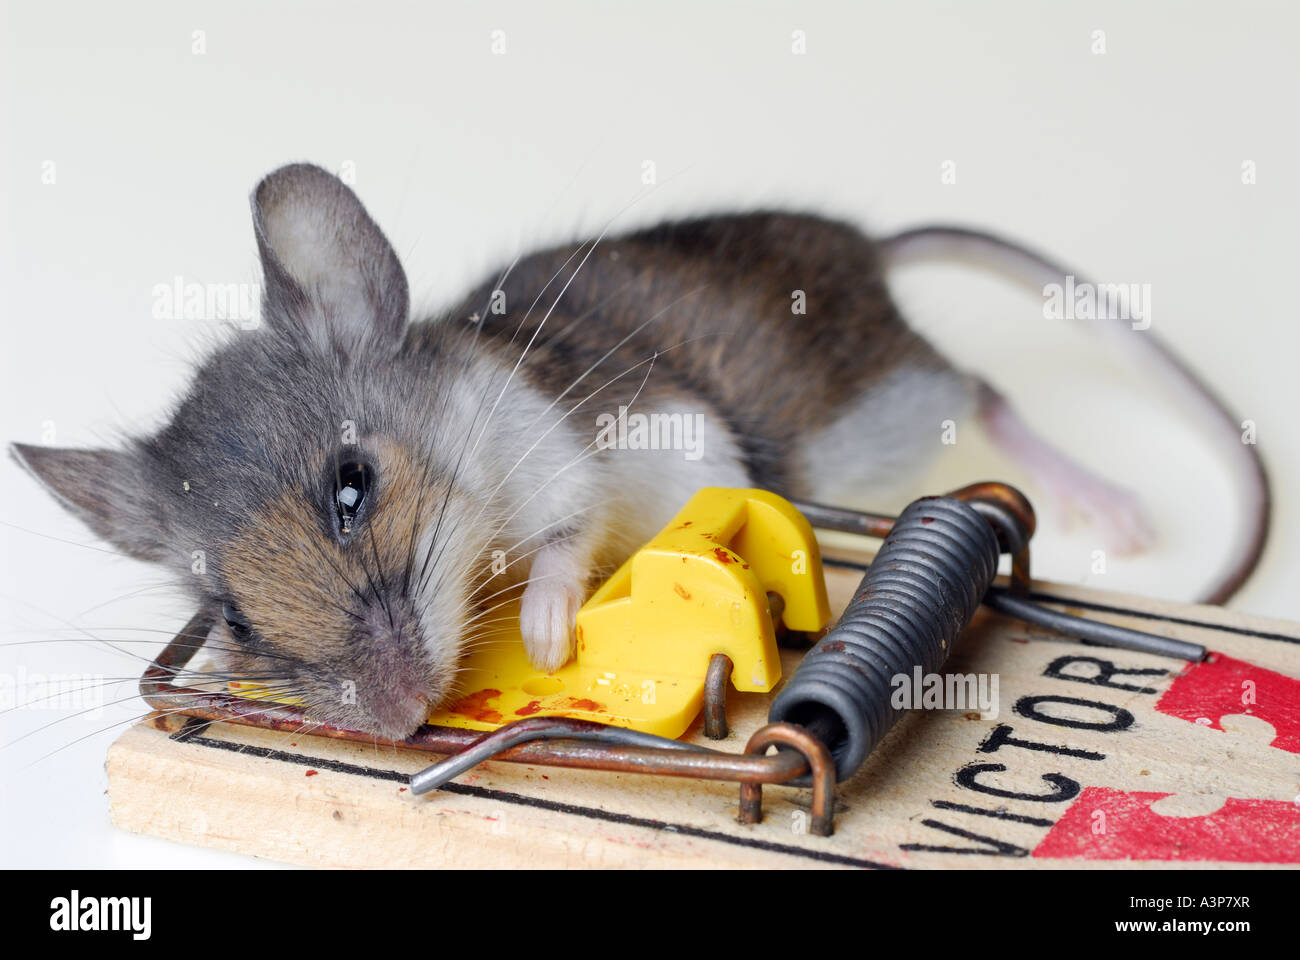 dead common house mouse vermin caught in a mousetrap on